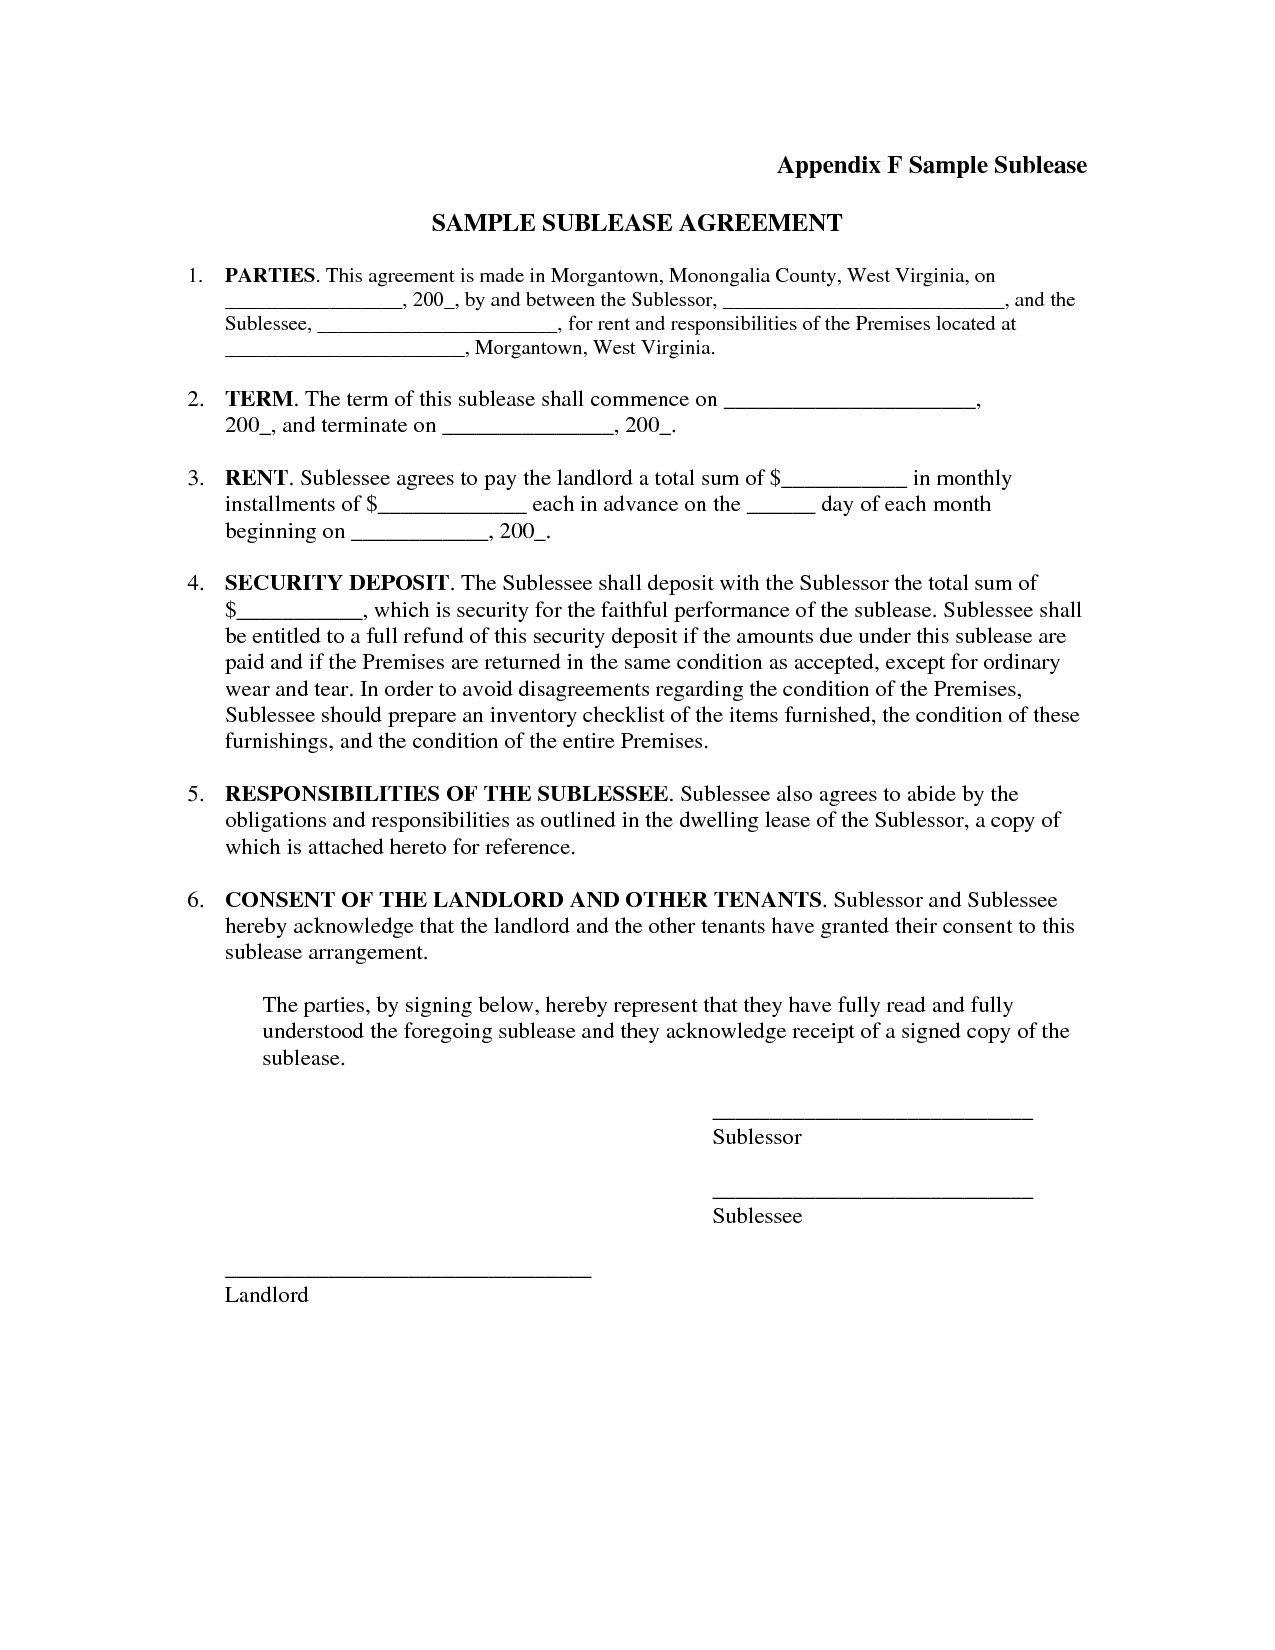 Appendix F Sample Sublease SAMPLE SUBLEASE AGREEMENT PARTIES This